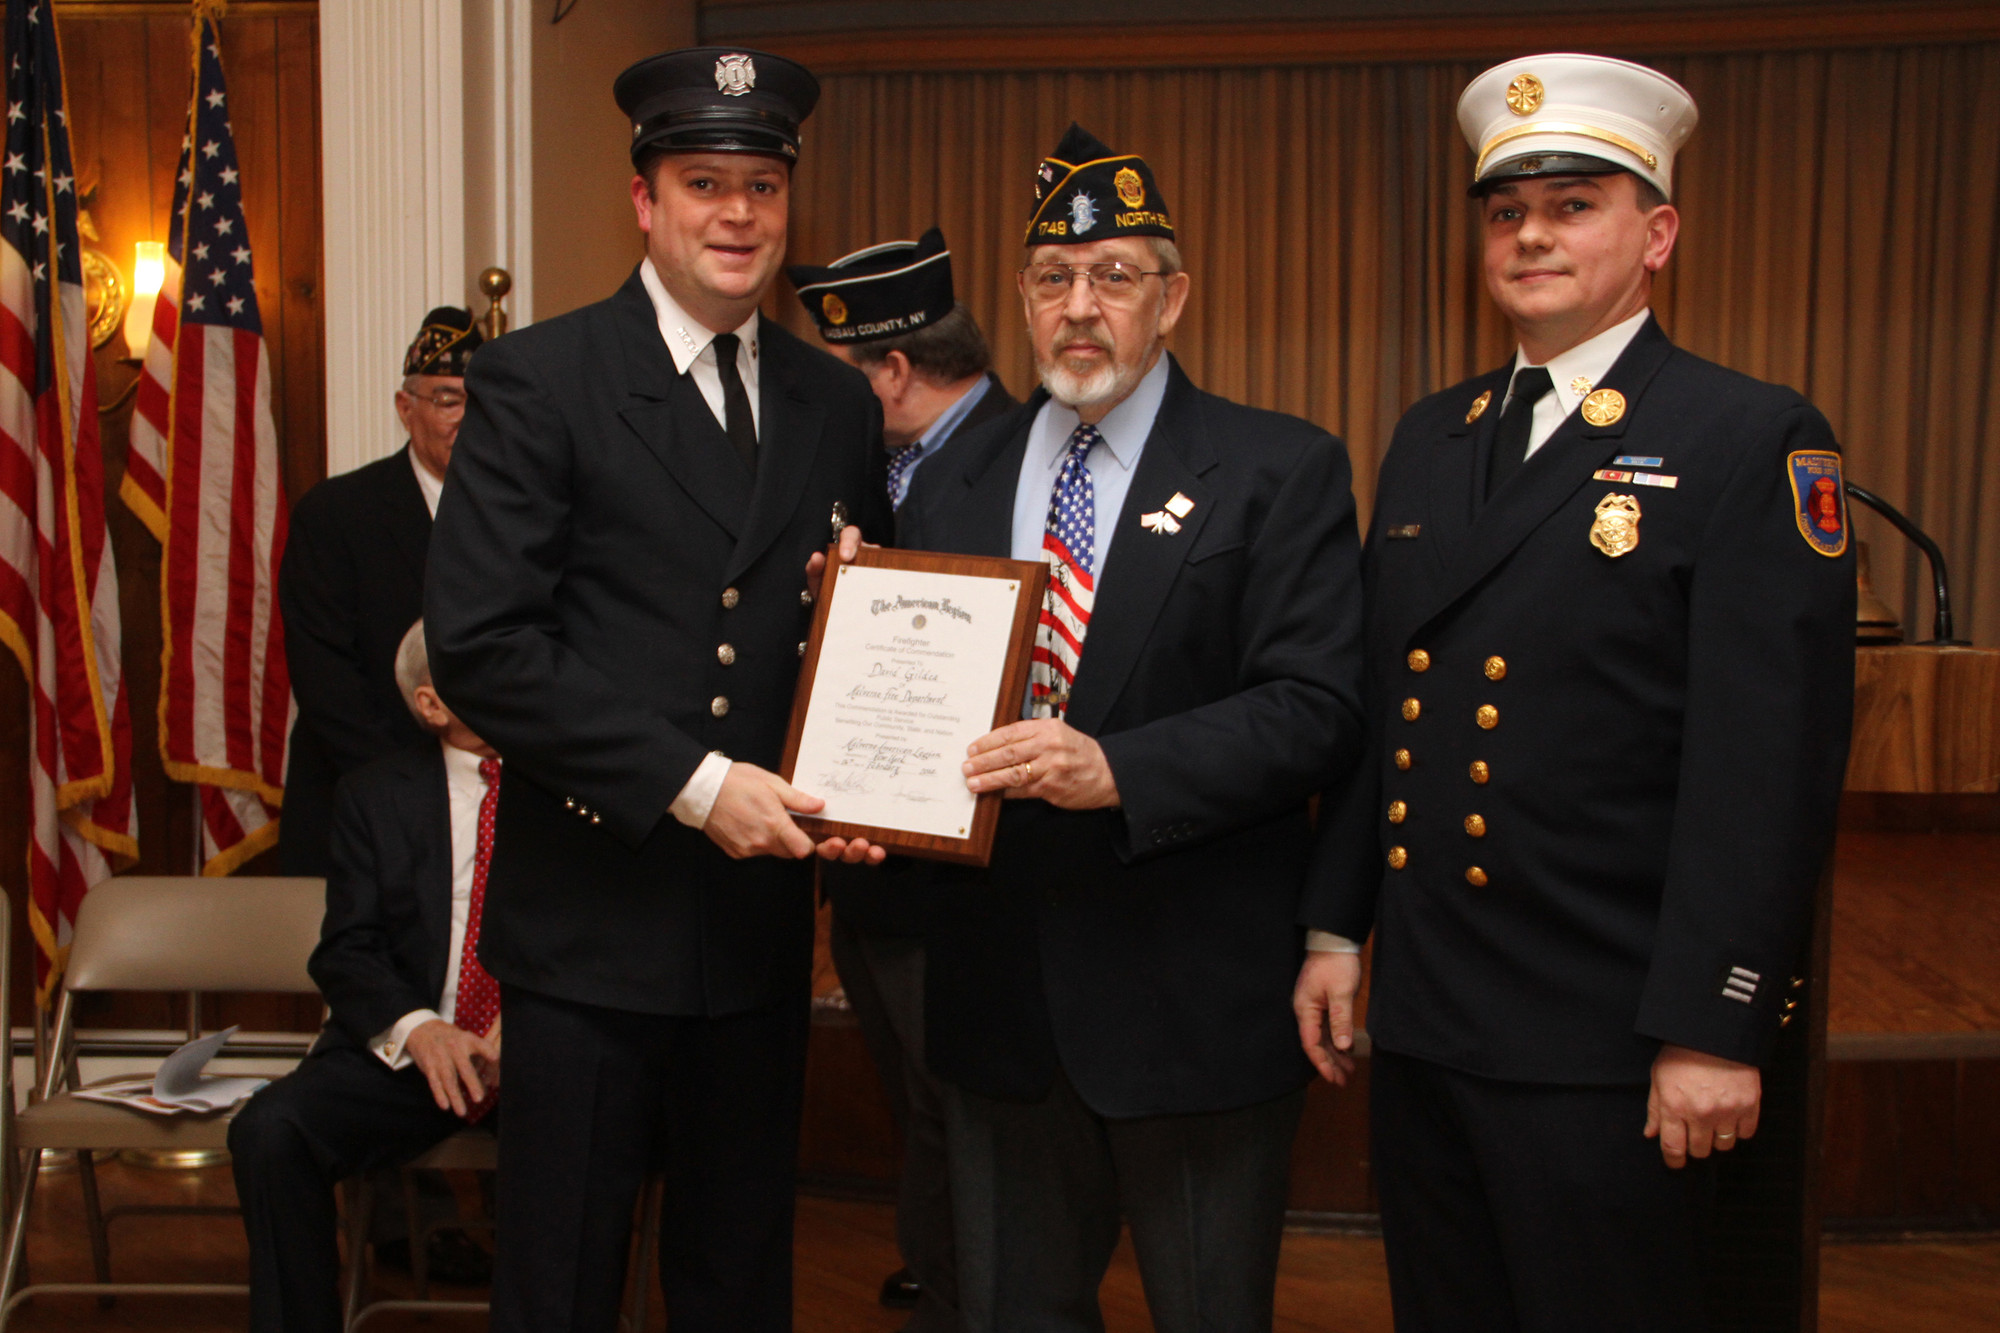 Malverne Fire Chief Scott Edwards and Ron Sabo honored Fireman David Gildea, left, with the Malverne Fire Department award.